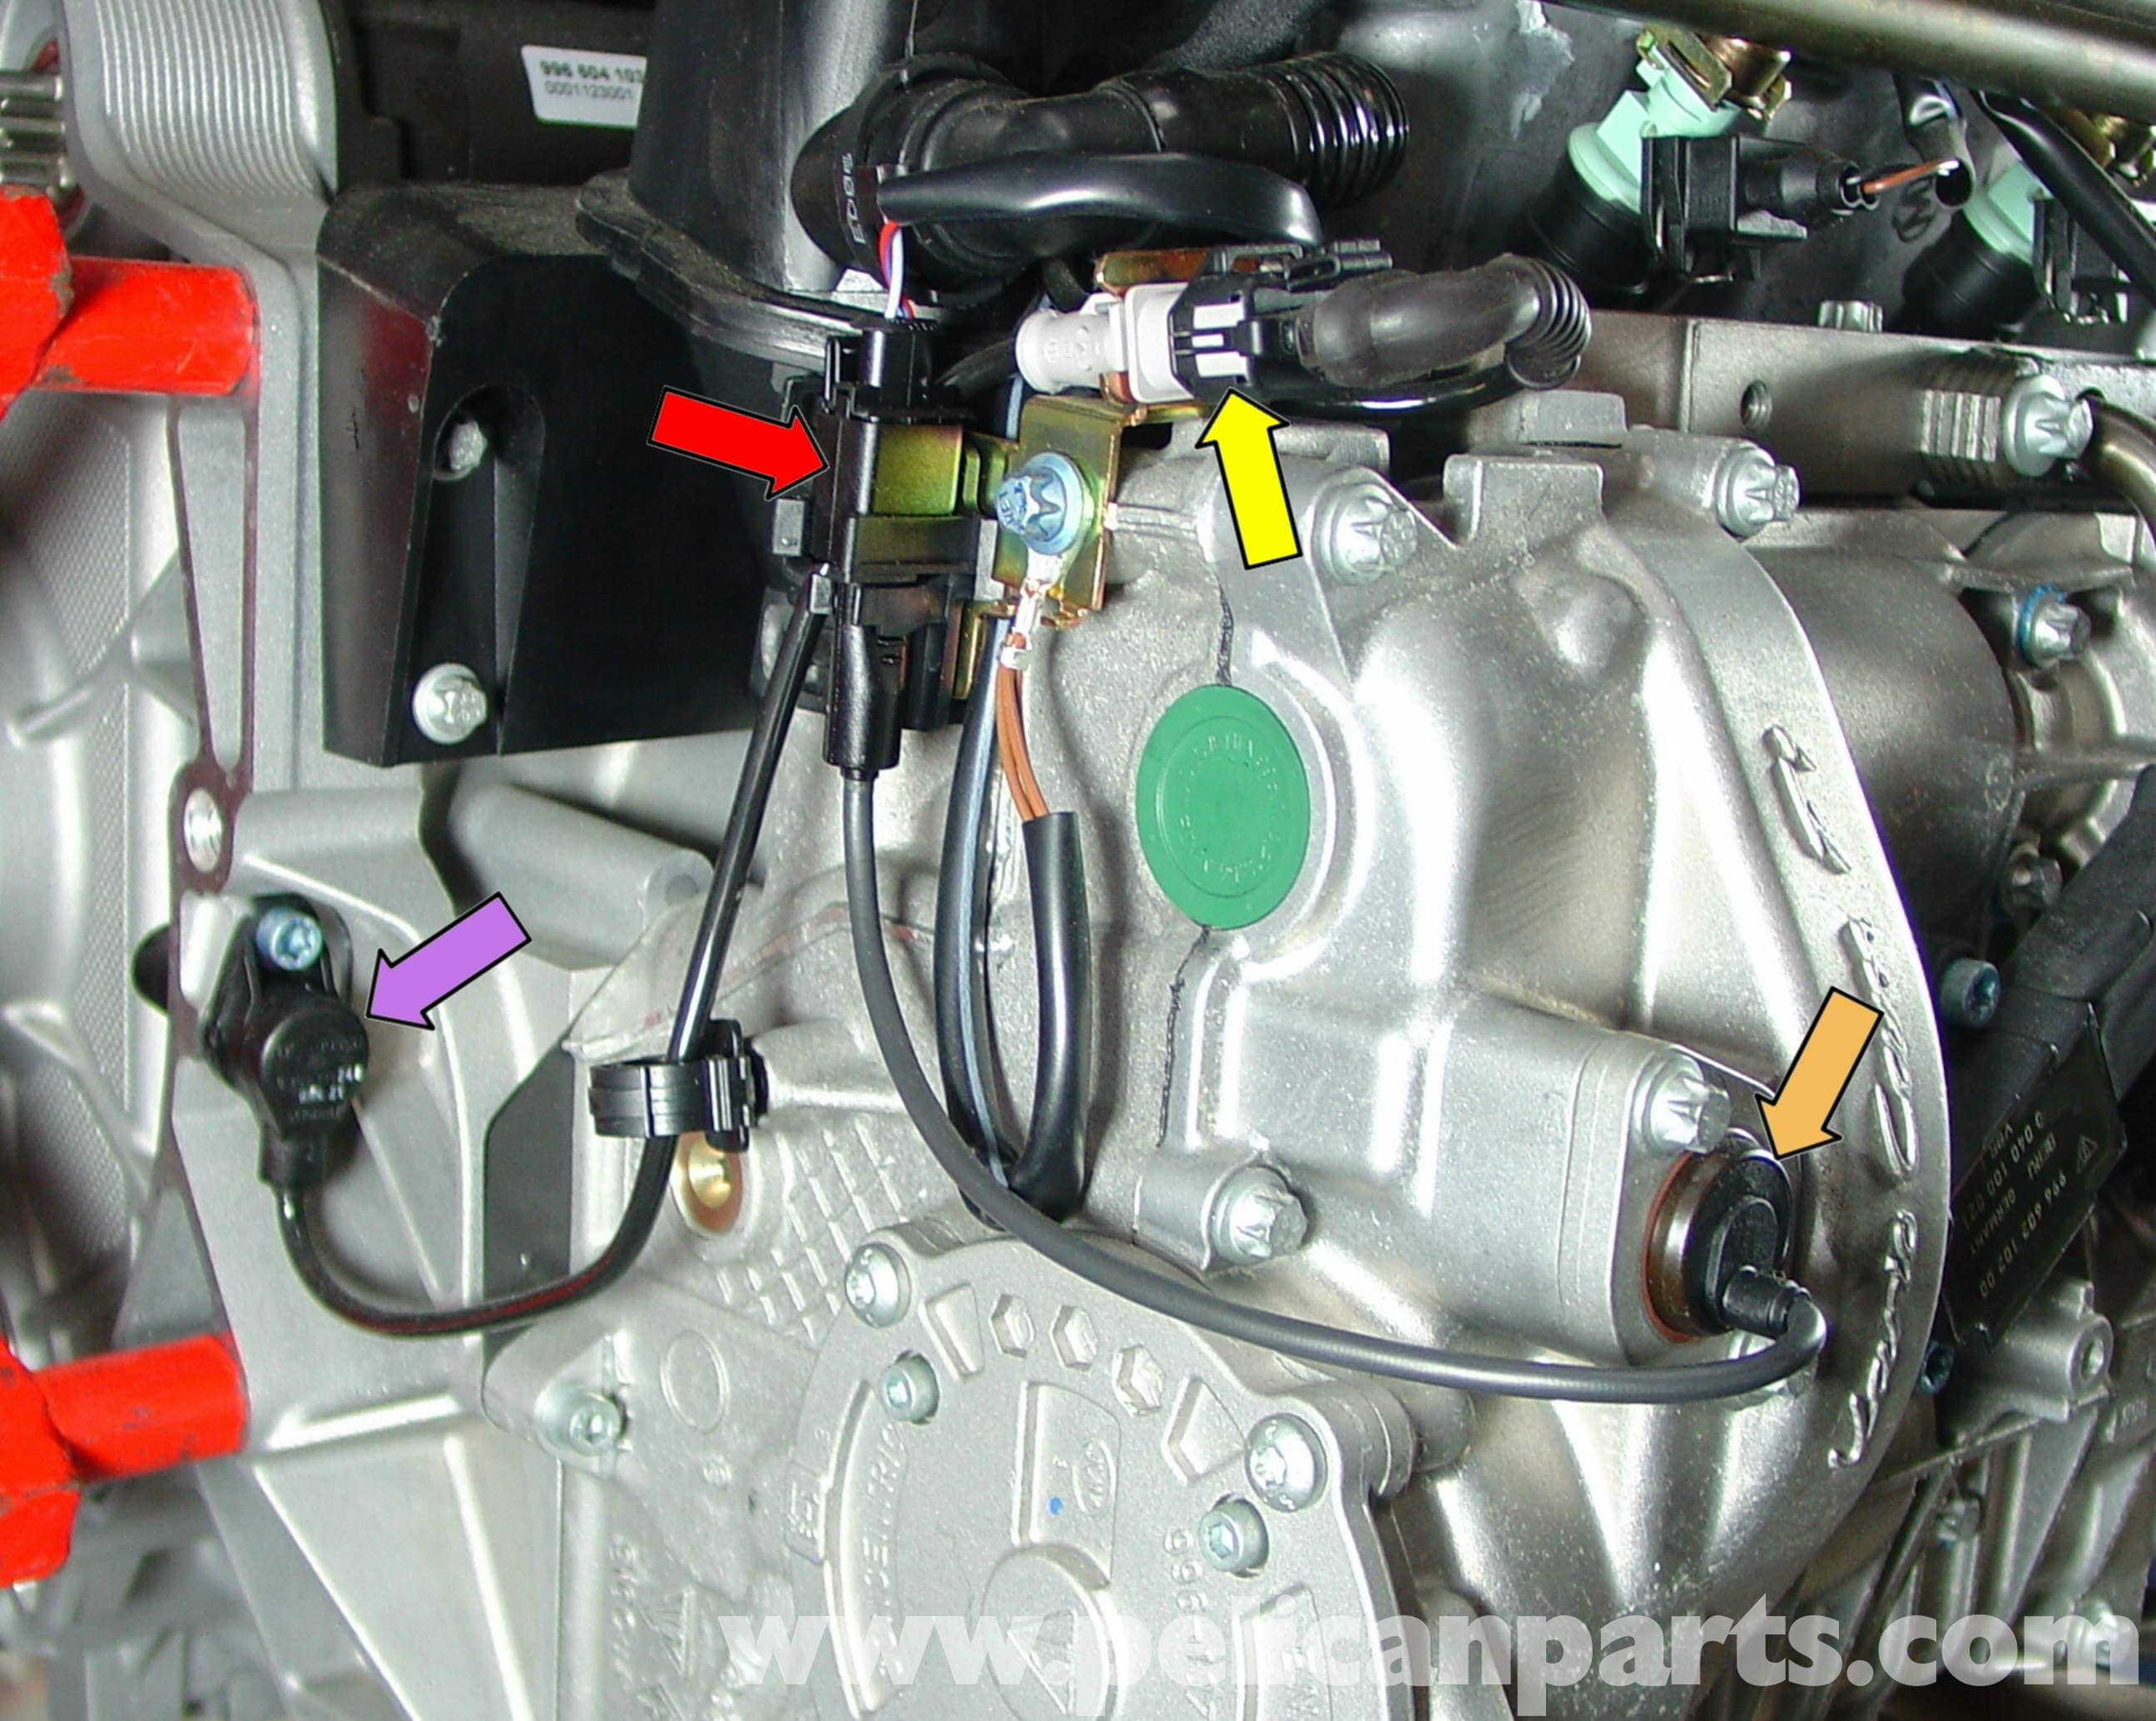 2001 Saab 9 5 Engine Diagram As Well 2004 Porsche Boxster Engine Images  Gallery. porsche boxster engine sensor replacement 986 987 1997 08 rh  pelicanparts ...